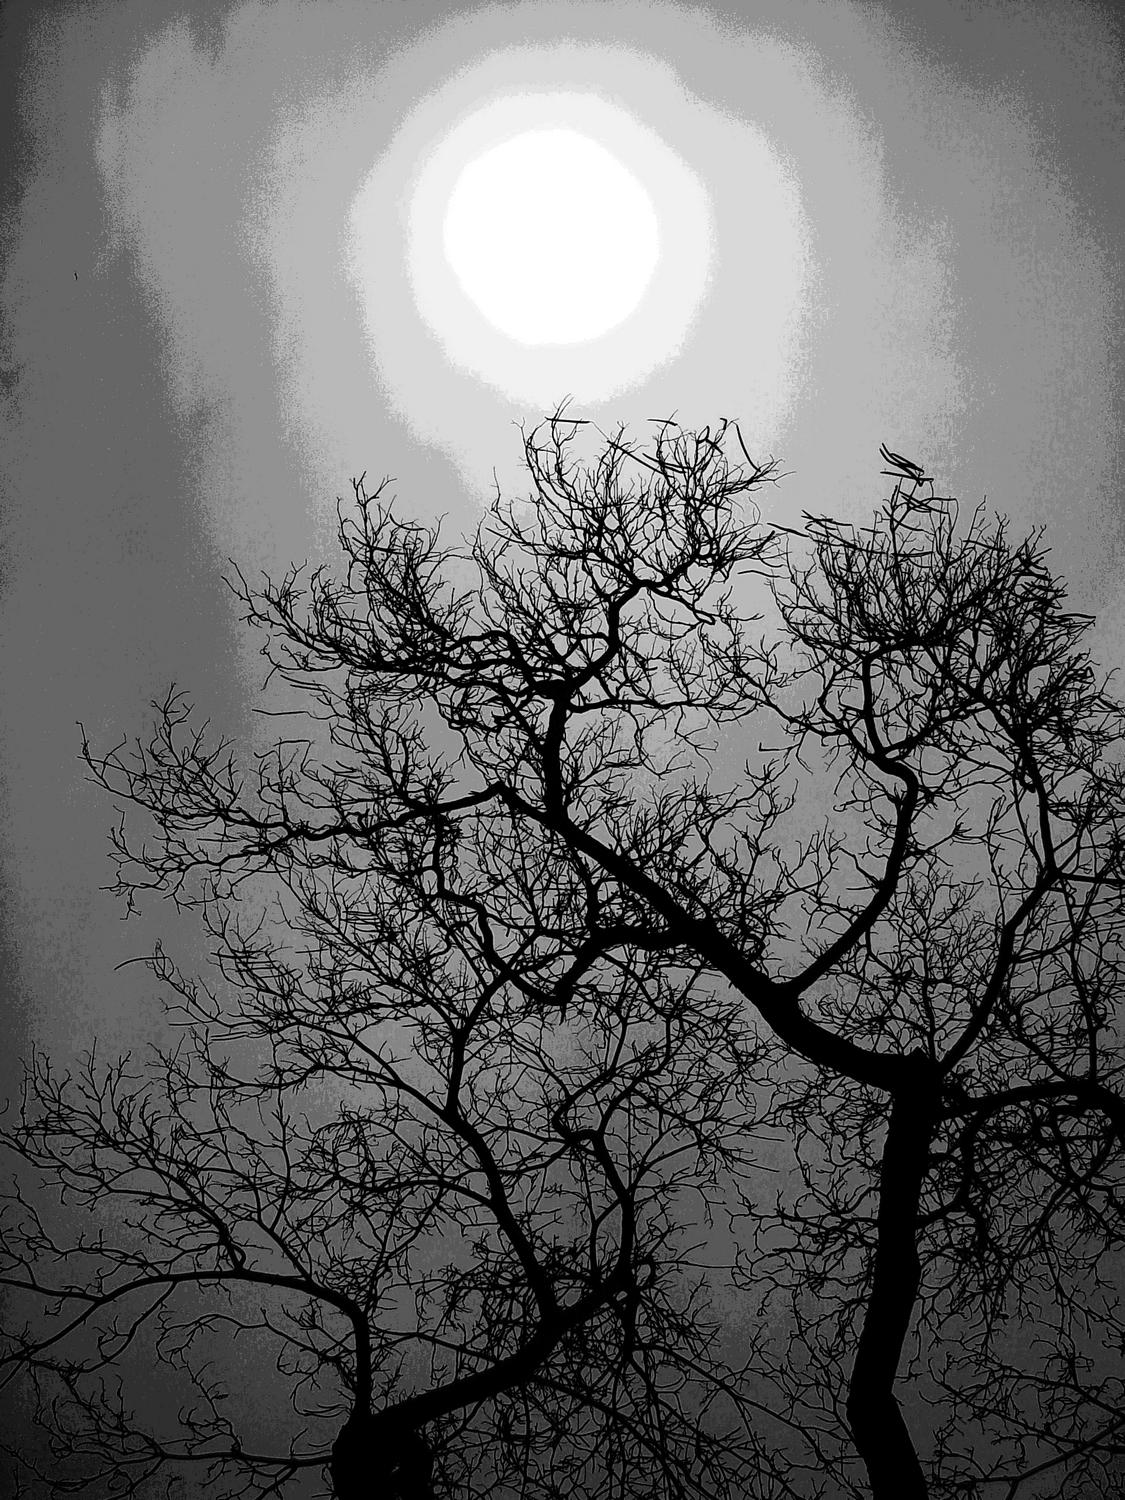 moon rising bare tree in the foreground black and white - Desolation - Techno-Impressionist Museum - Techno-Impressionism - art - beautiful - photo photography picture - by Tony Karp